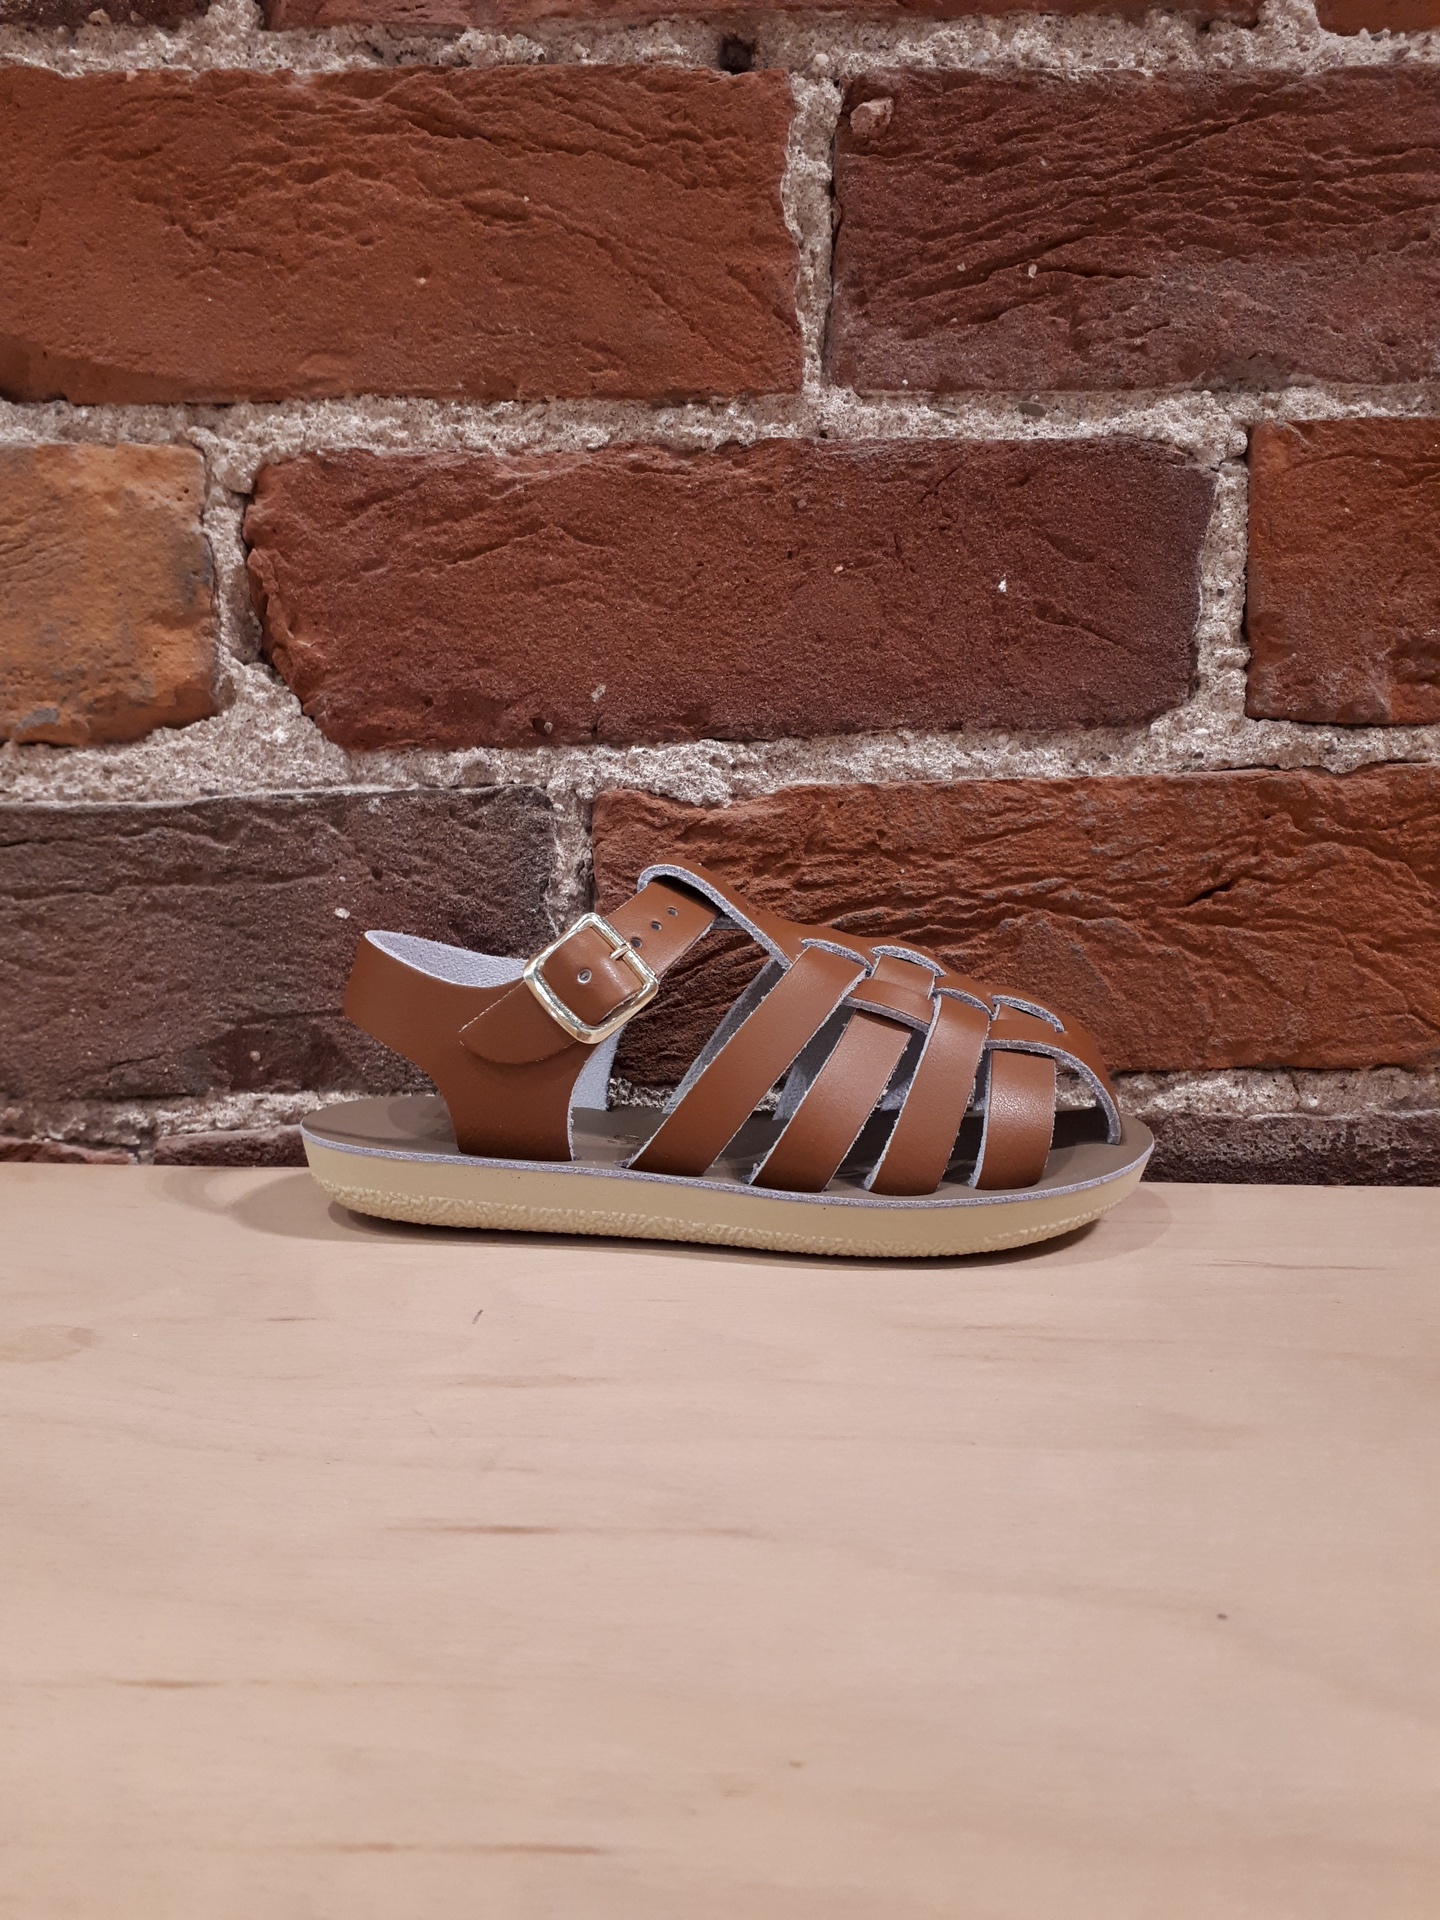 SALT WATER SANDALS - SAILOR IN TAN (9-12)